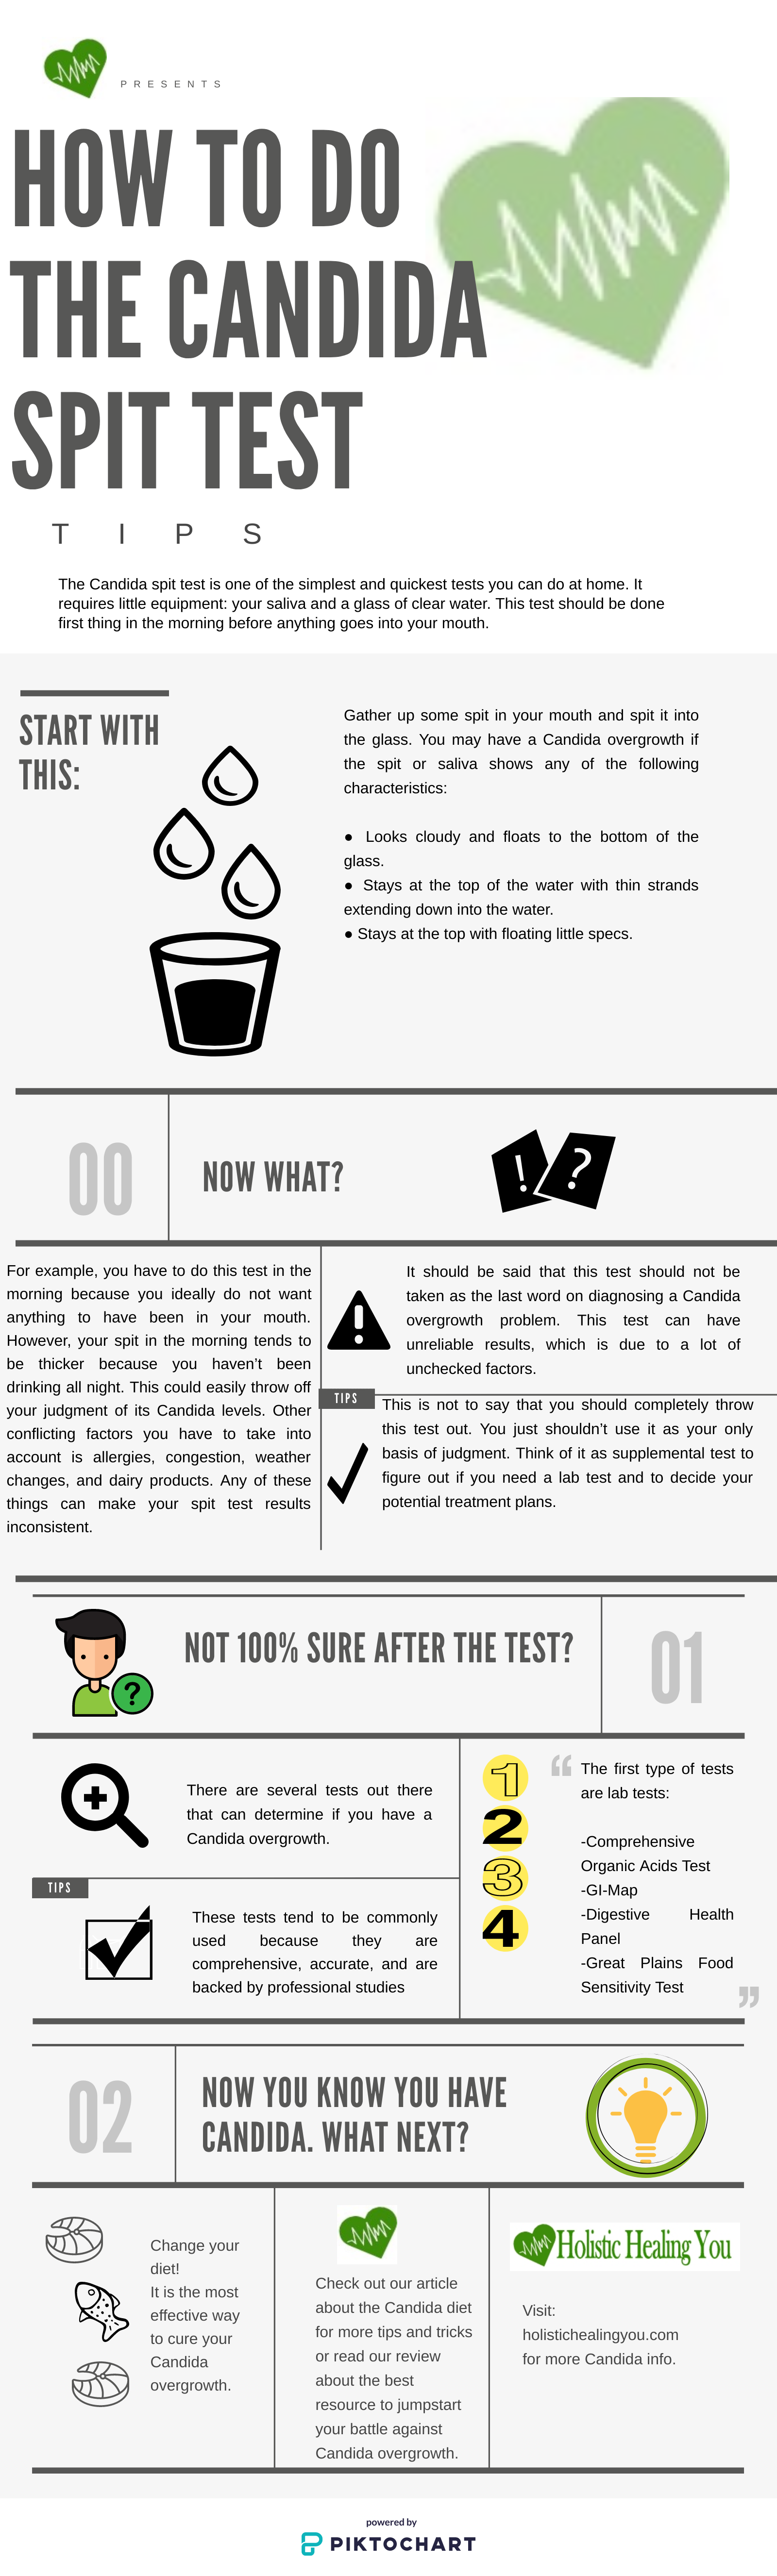 how to do the candida spit test-featured image